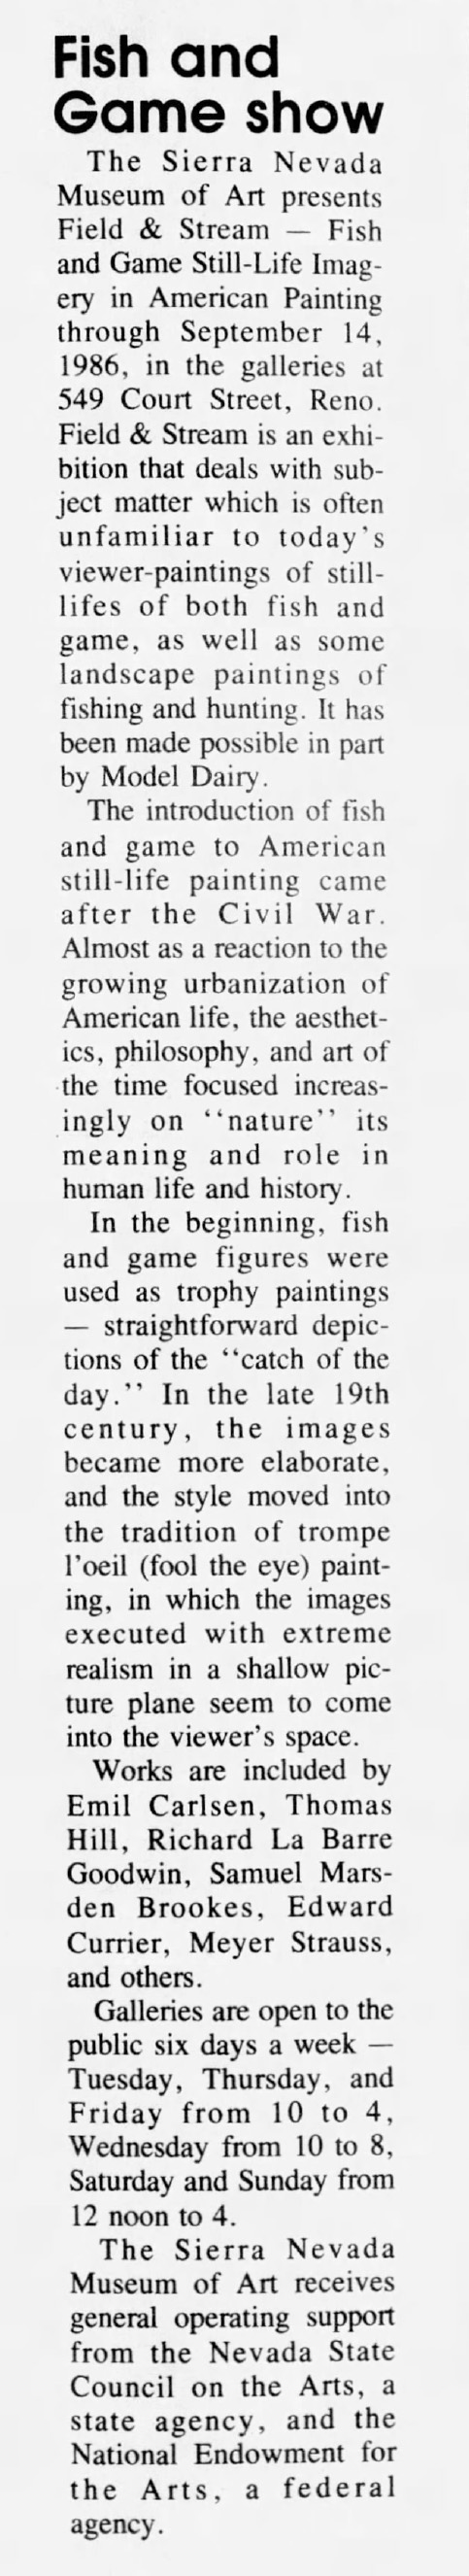 "Reno Gazette-Journal, Reno, NV, ""Fish and Game show"", Thursday, August 21, 1986, Main Edition, page 69, not illustrated"